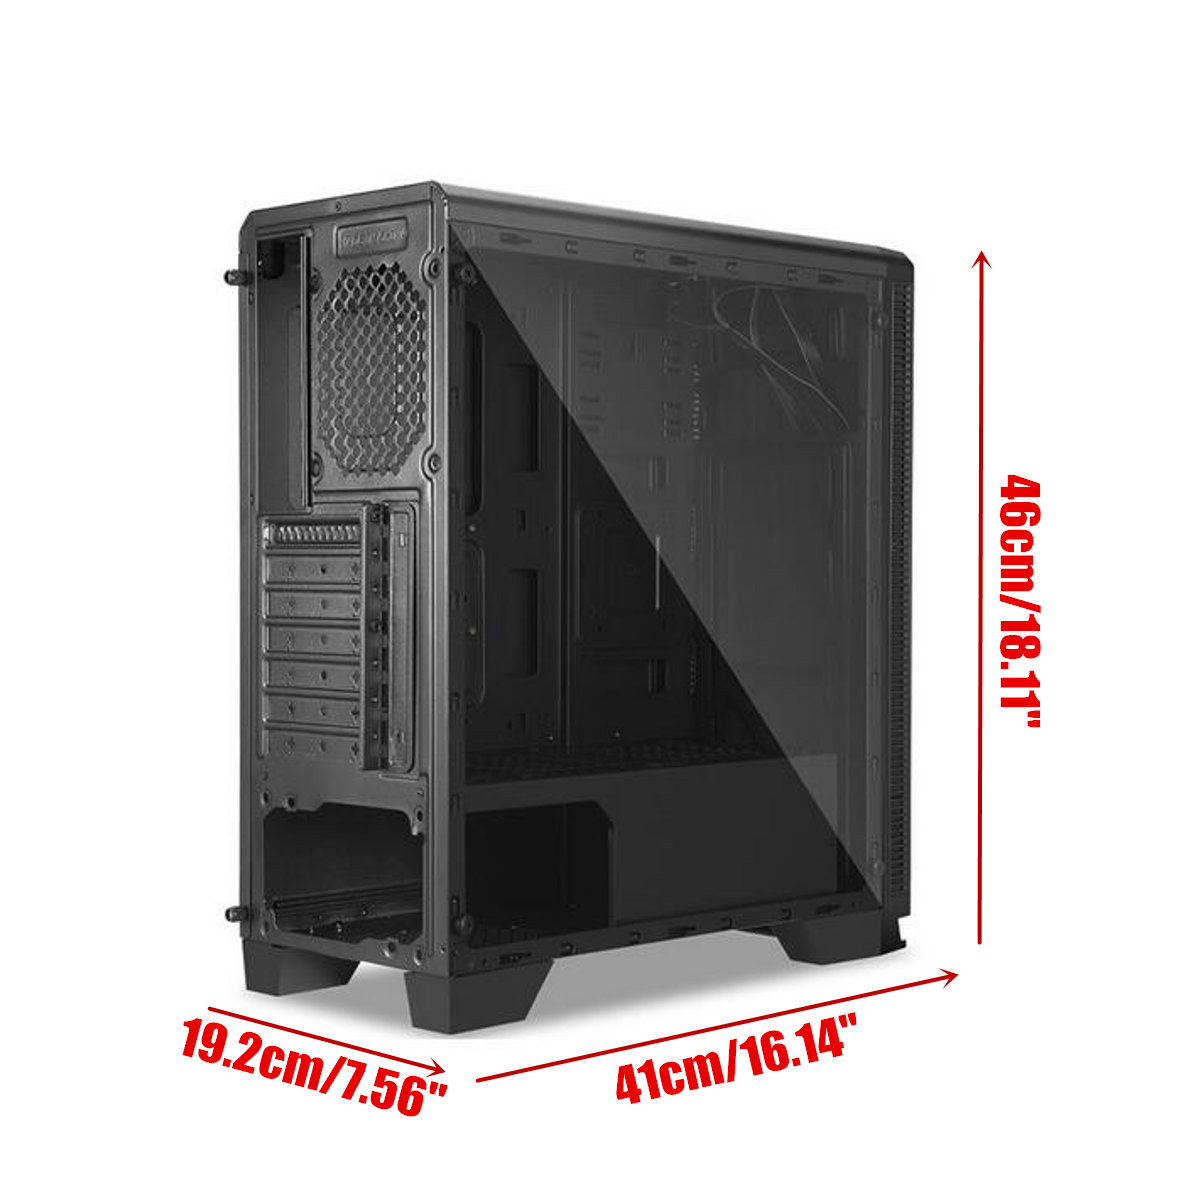 Case Pc Segotep Halo7 Plus Usb3 Gaming Tempered Computer Case Pc Atx M Atx Itx Mid Tower Desktop Chassis